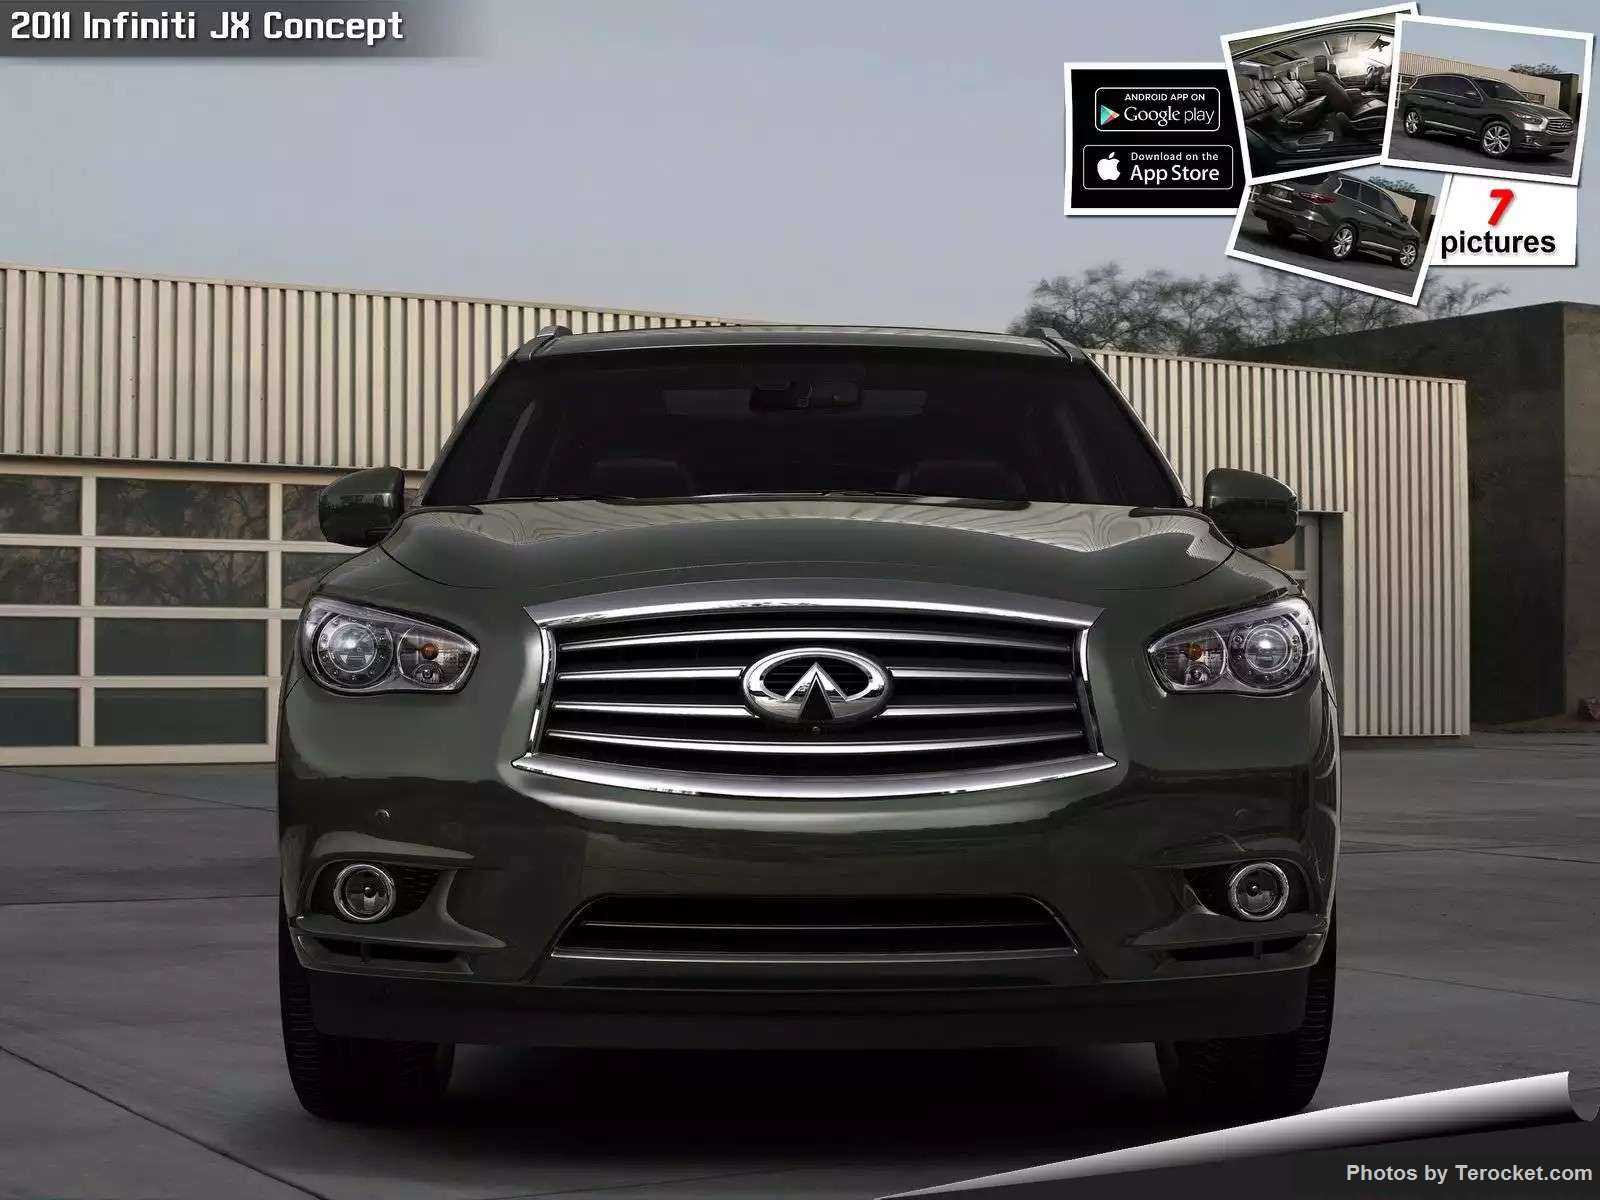 Hình ảnh xe ô tô Infiniti JX Concept 2011 & nội ngoại thất